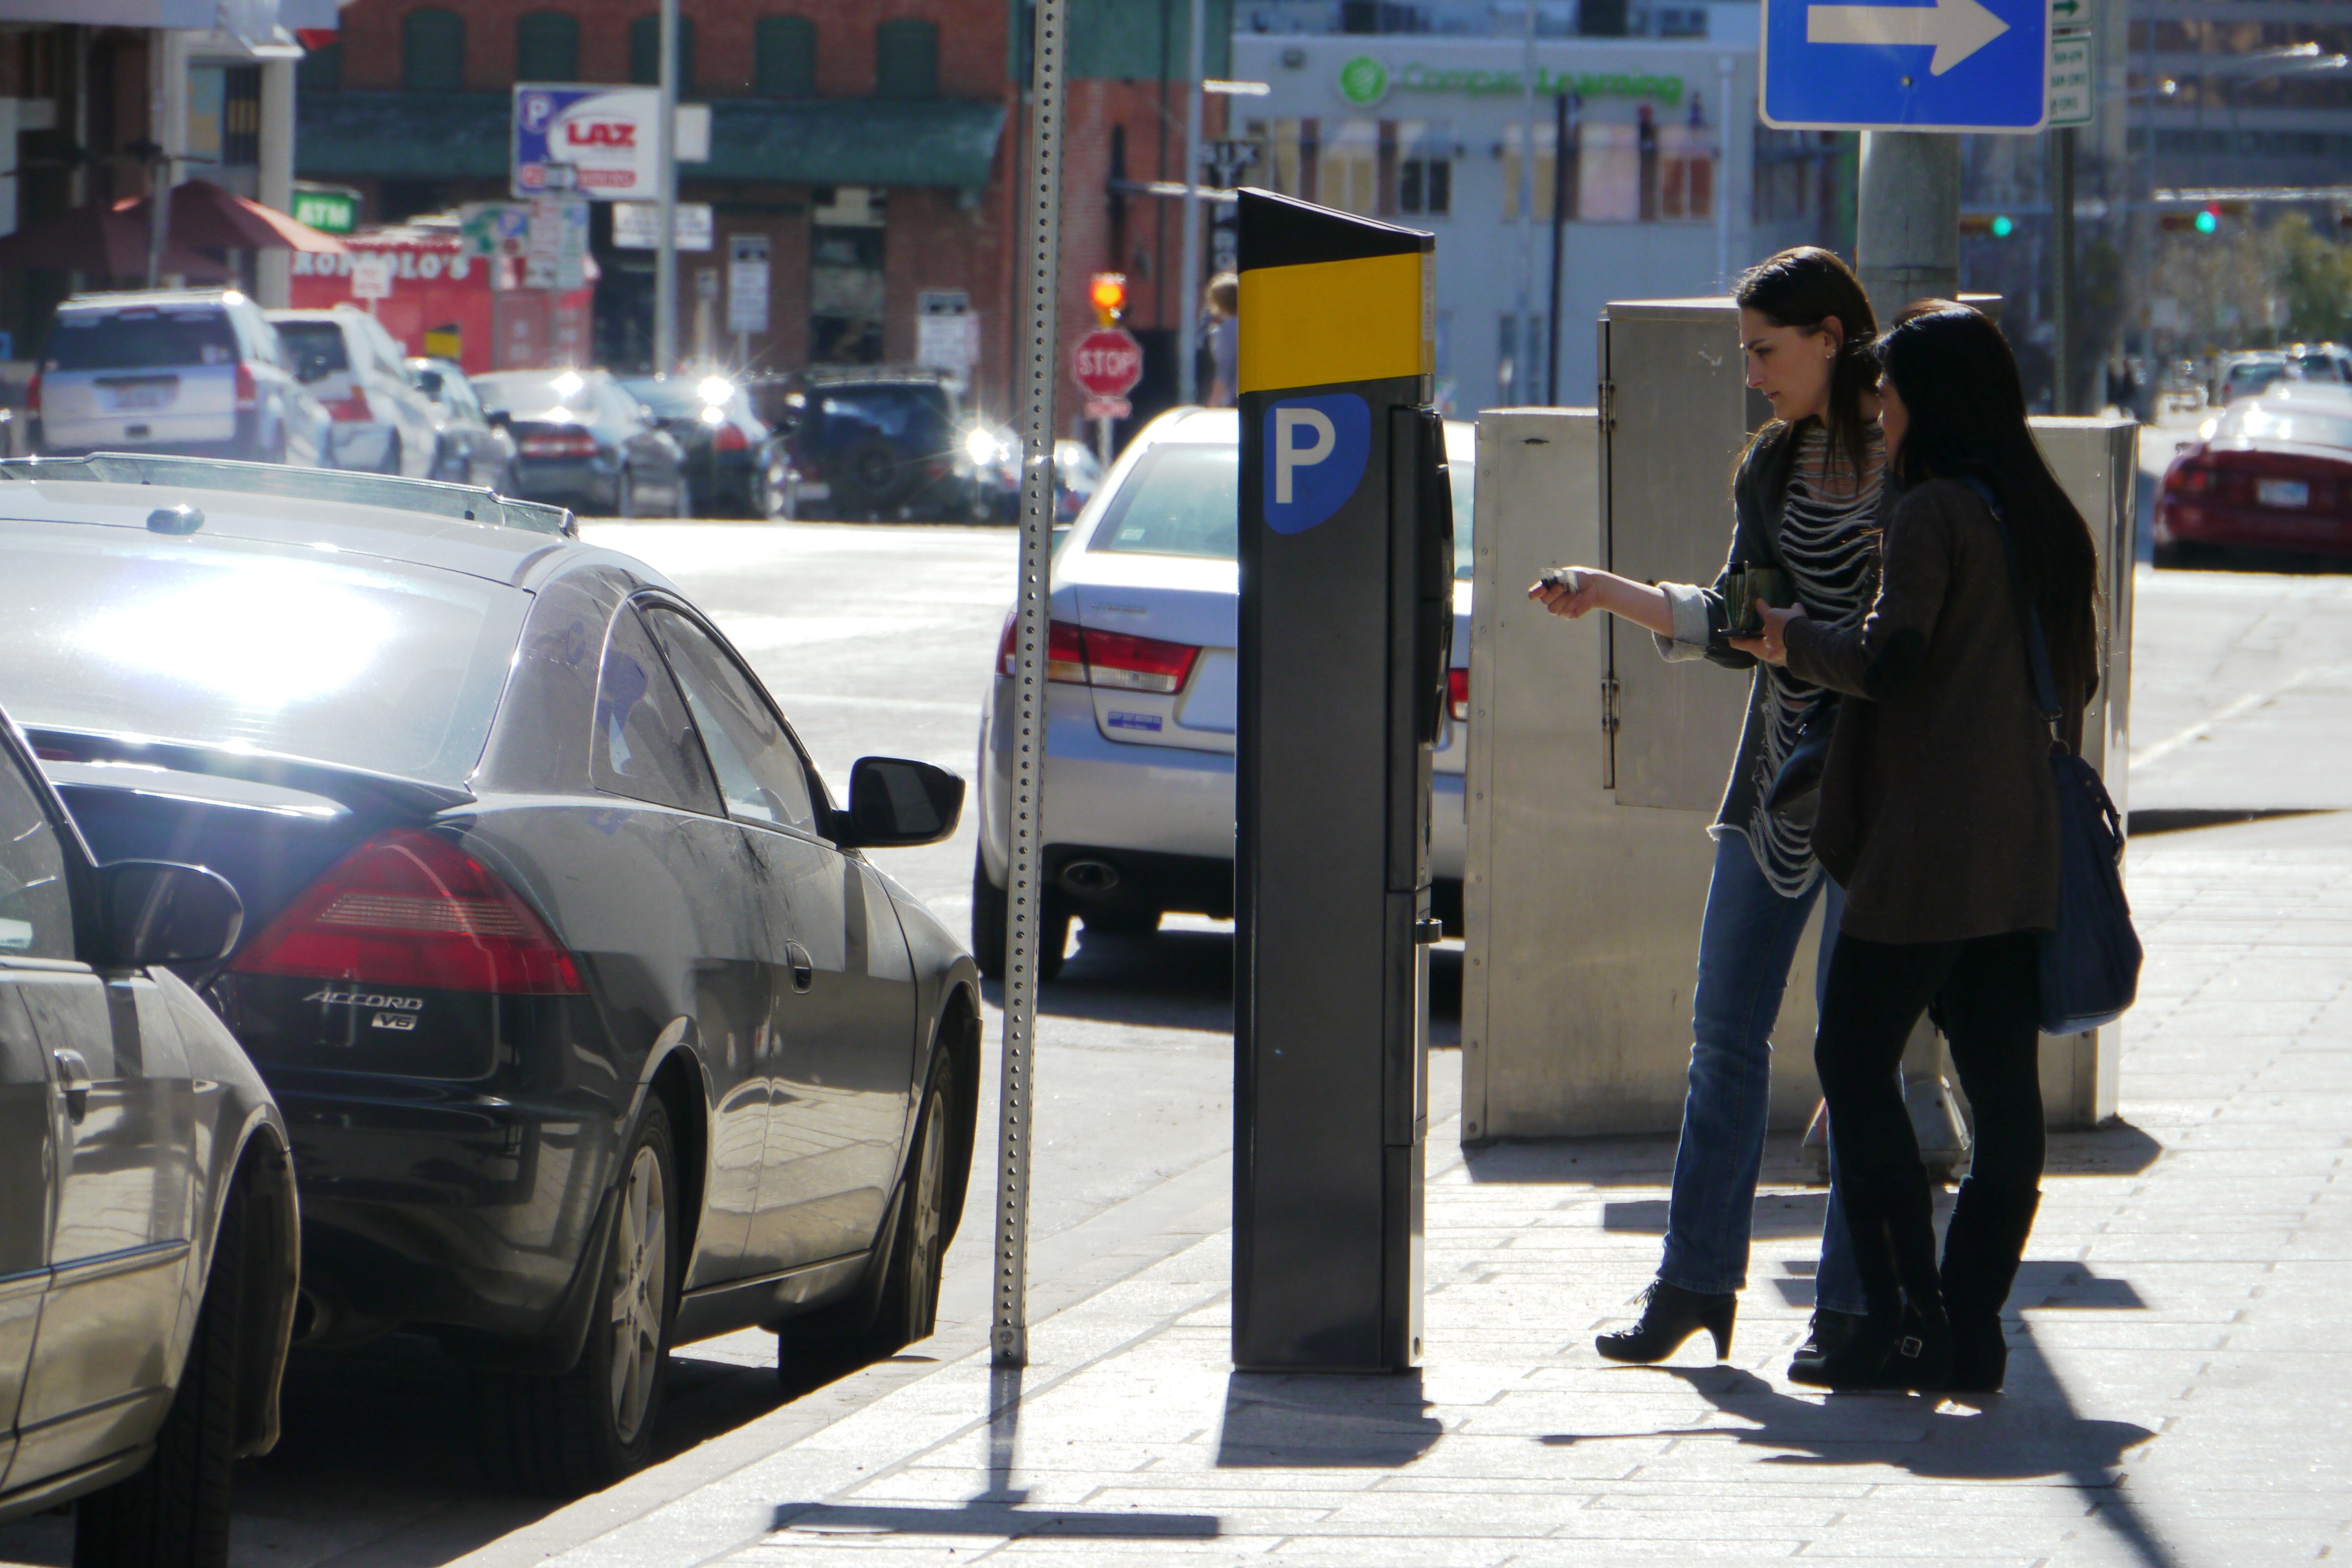 An adult paying for an on-street parking space at a parking kiosk